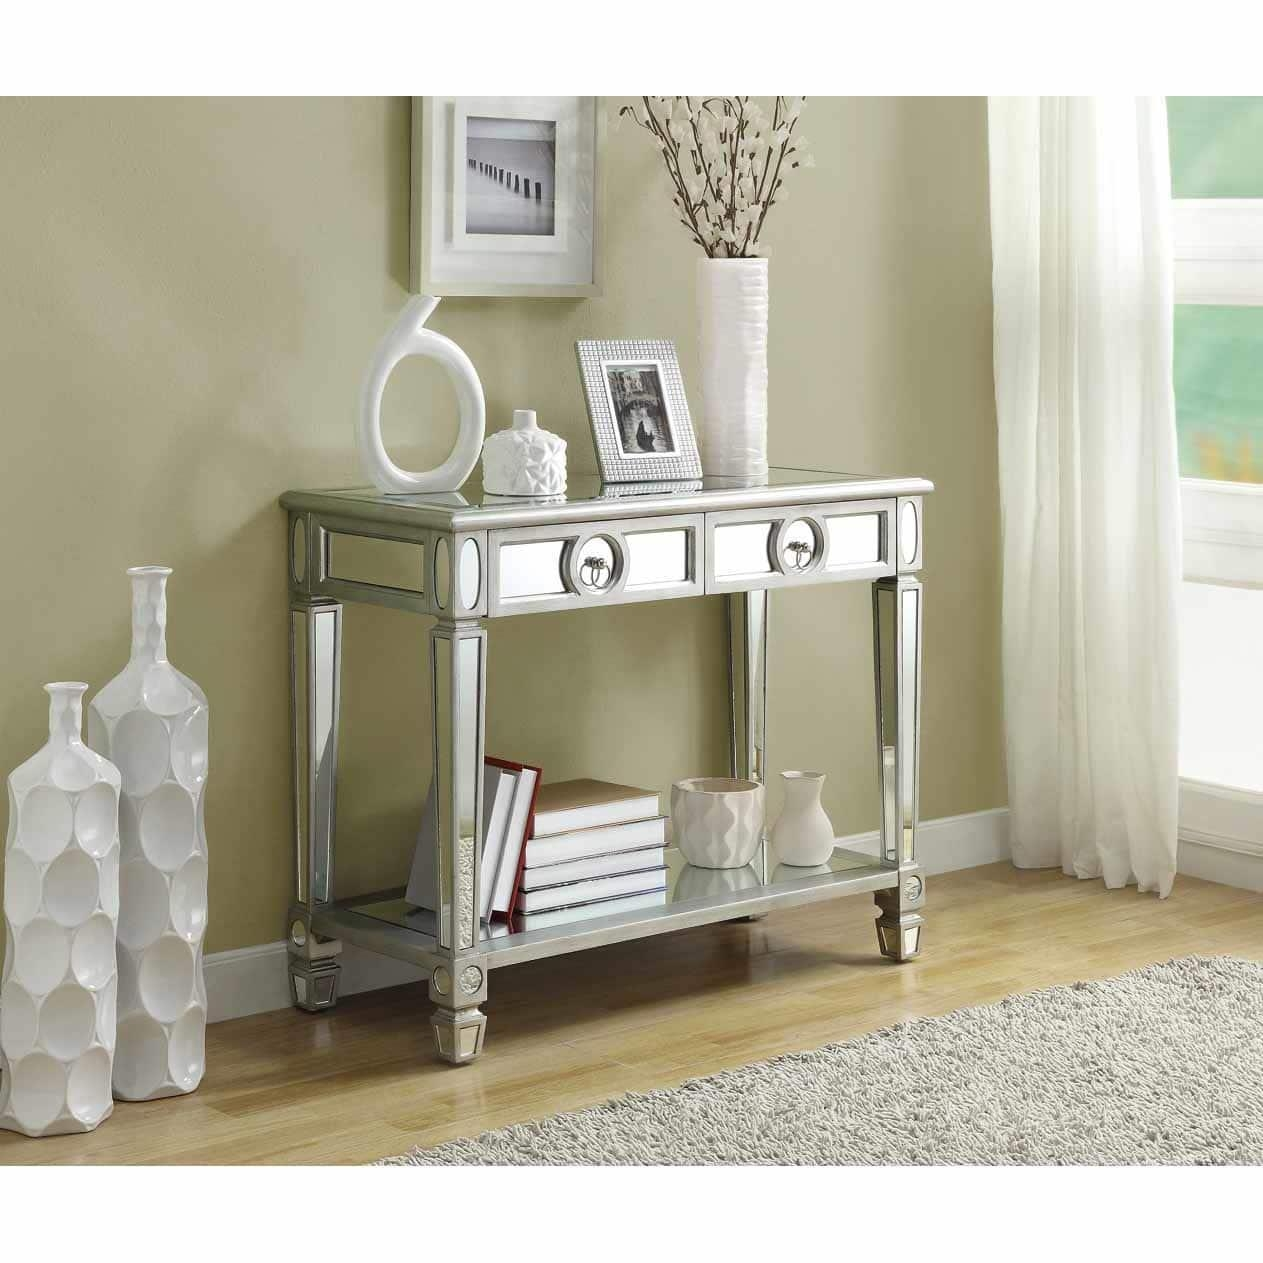 Mirrored 38 Inch Sofa Console Table With Two Drawers – Free Within Sofa Table Drawers (Image 10 of 20)